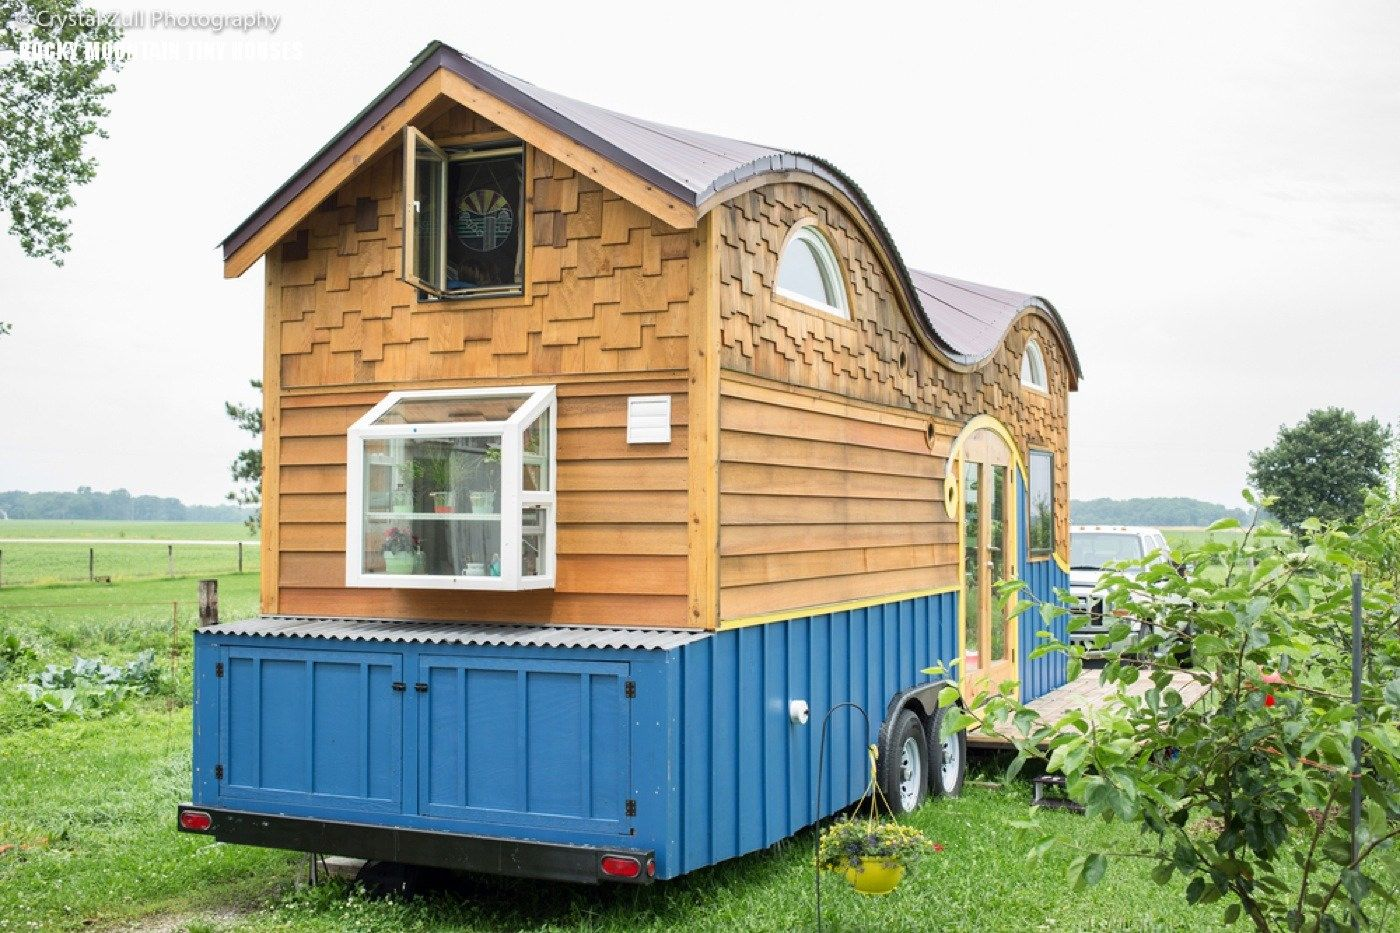 Family of 4's 208 Sq. Ft. Pequod Tiny House....oh my gosh. Here it is! My dreamhouse!!!! I can see Em and me living here.